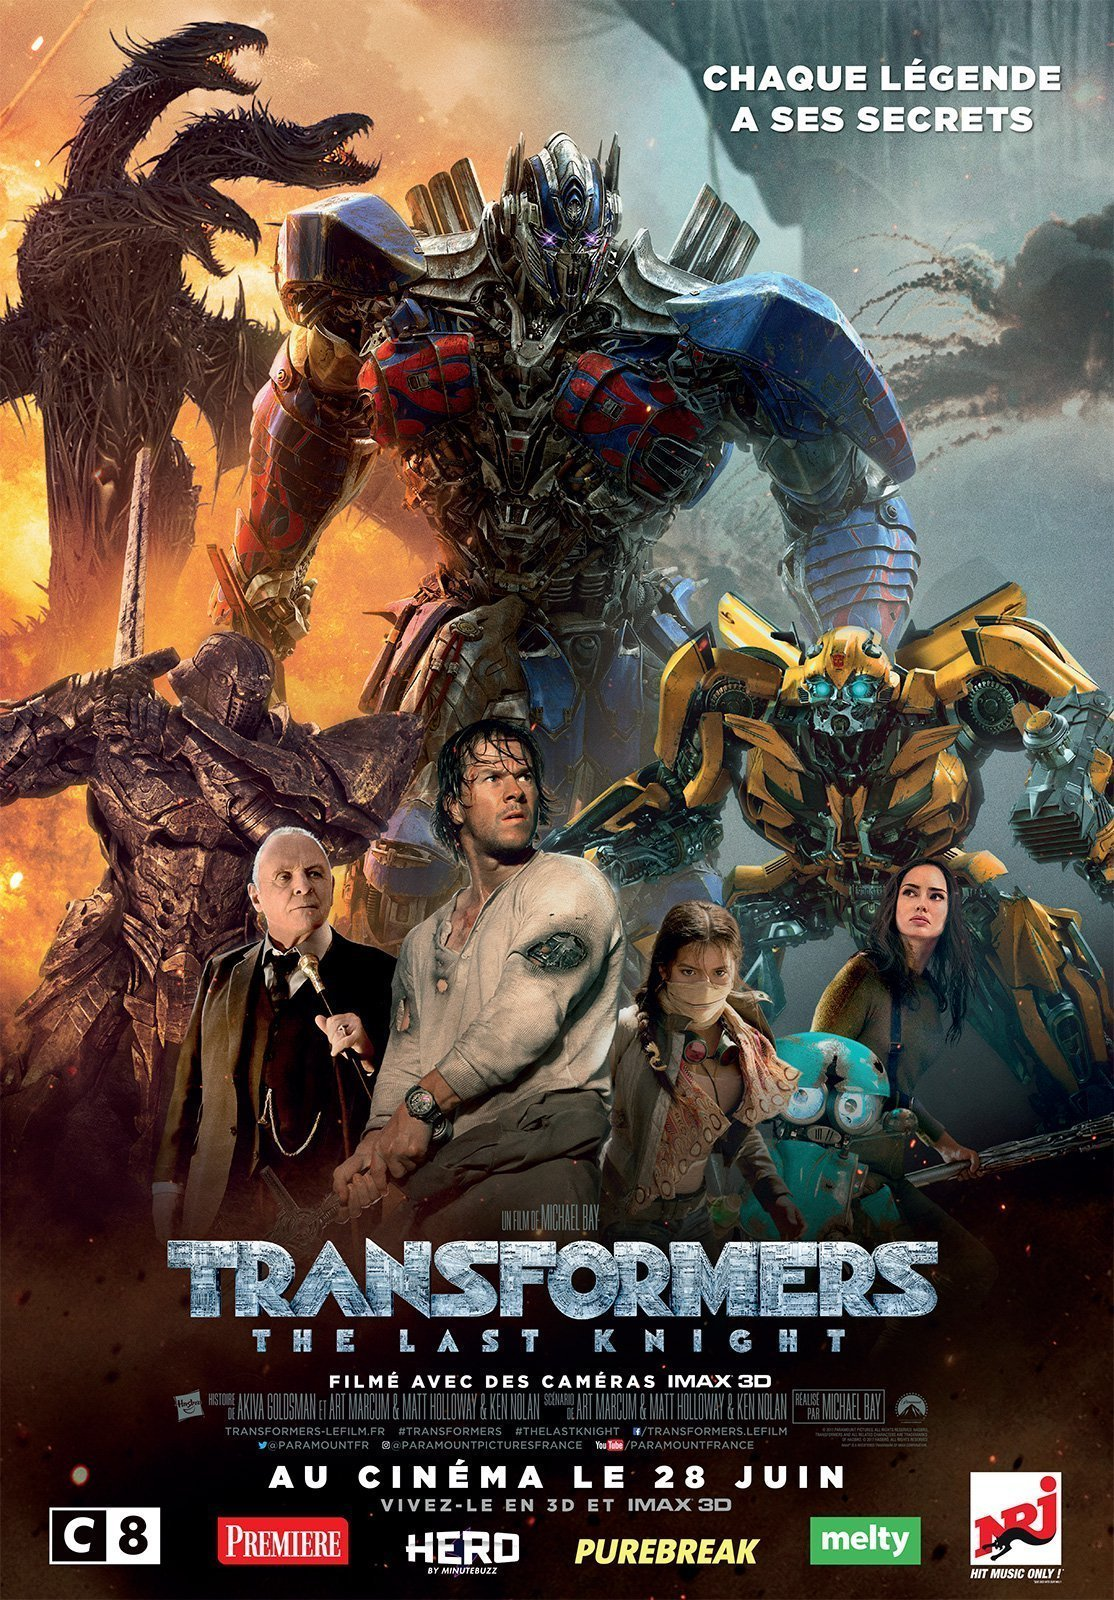 Affiche française du film Transformers: The Last Knight